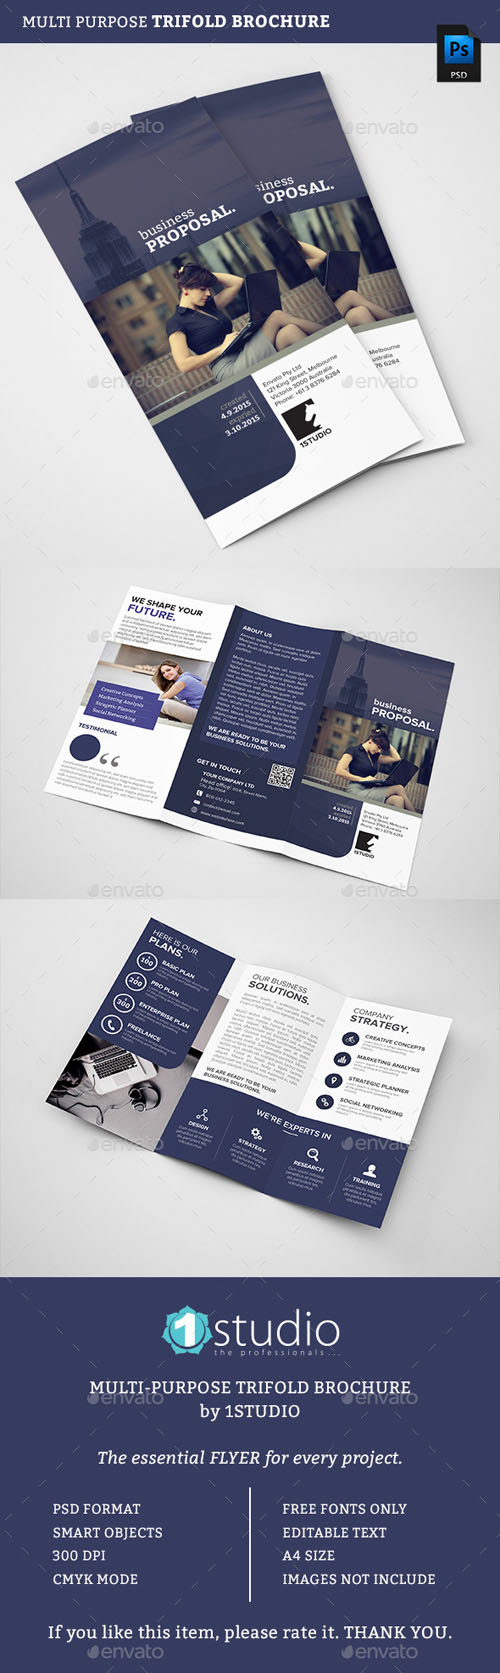 Trifold Brochure 12776450